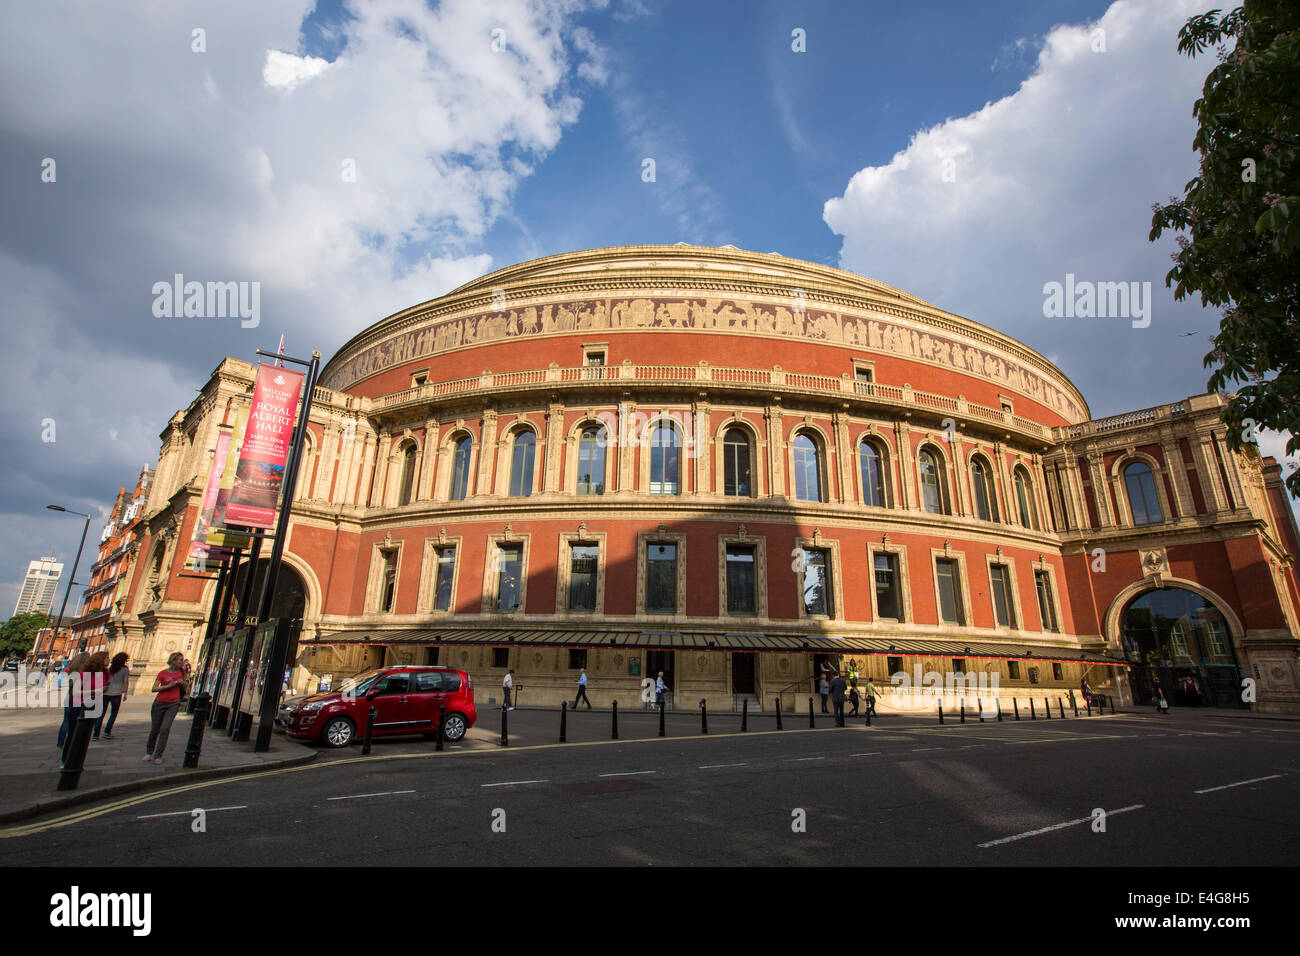 The royal albert hall in london uk stock photo royalty for Door 8 royal albert hall